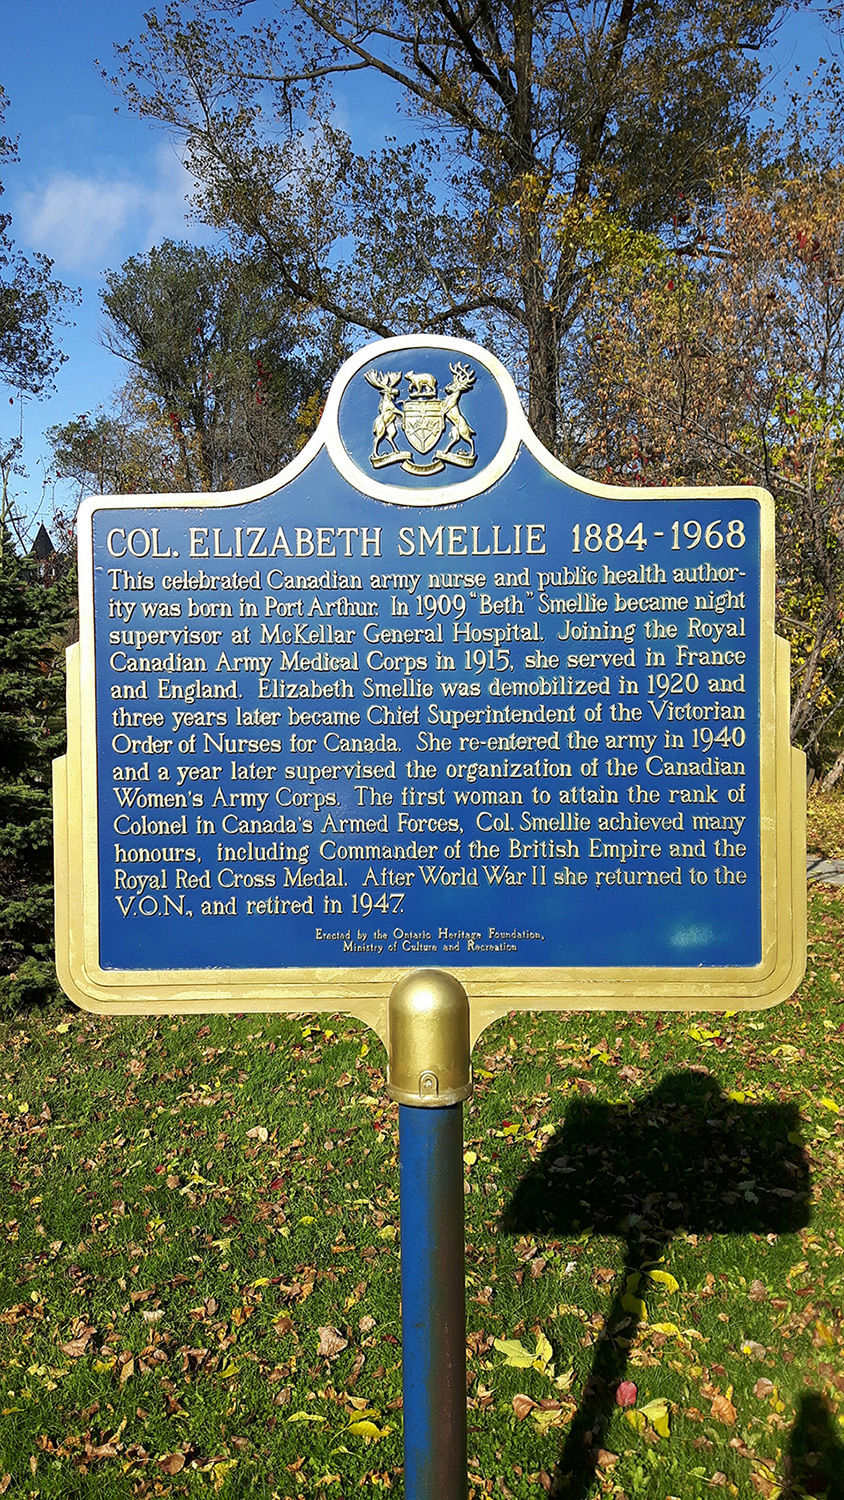 The Ontario Heritage Plaque for Colonel Elizabeth Lawrie Smellie (1884-1968) was originally erected at the McKellar General Hospital site where Col Smellie was night matron in 1909. The building, which opened in 1903, was converted to apartments in 1995. The plaque now stands in nearby Waverly Park in Thunder Bay. Photo by: Captain George Romick, Thunder Bay Military Museum.